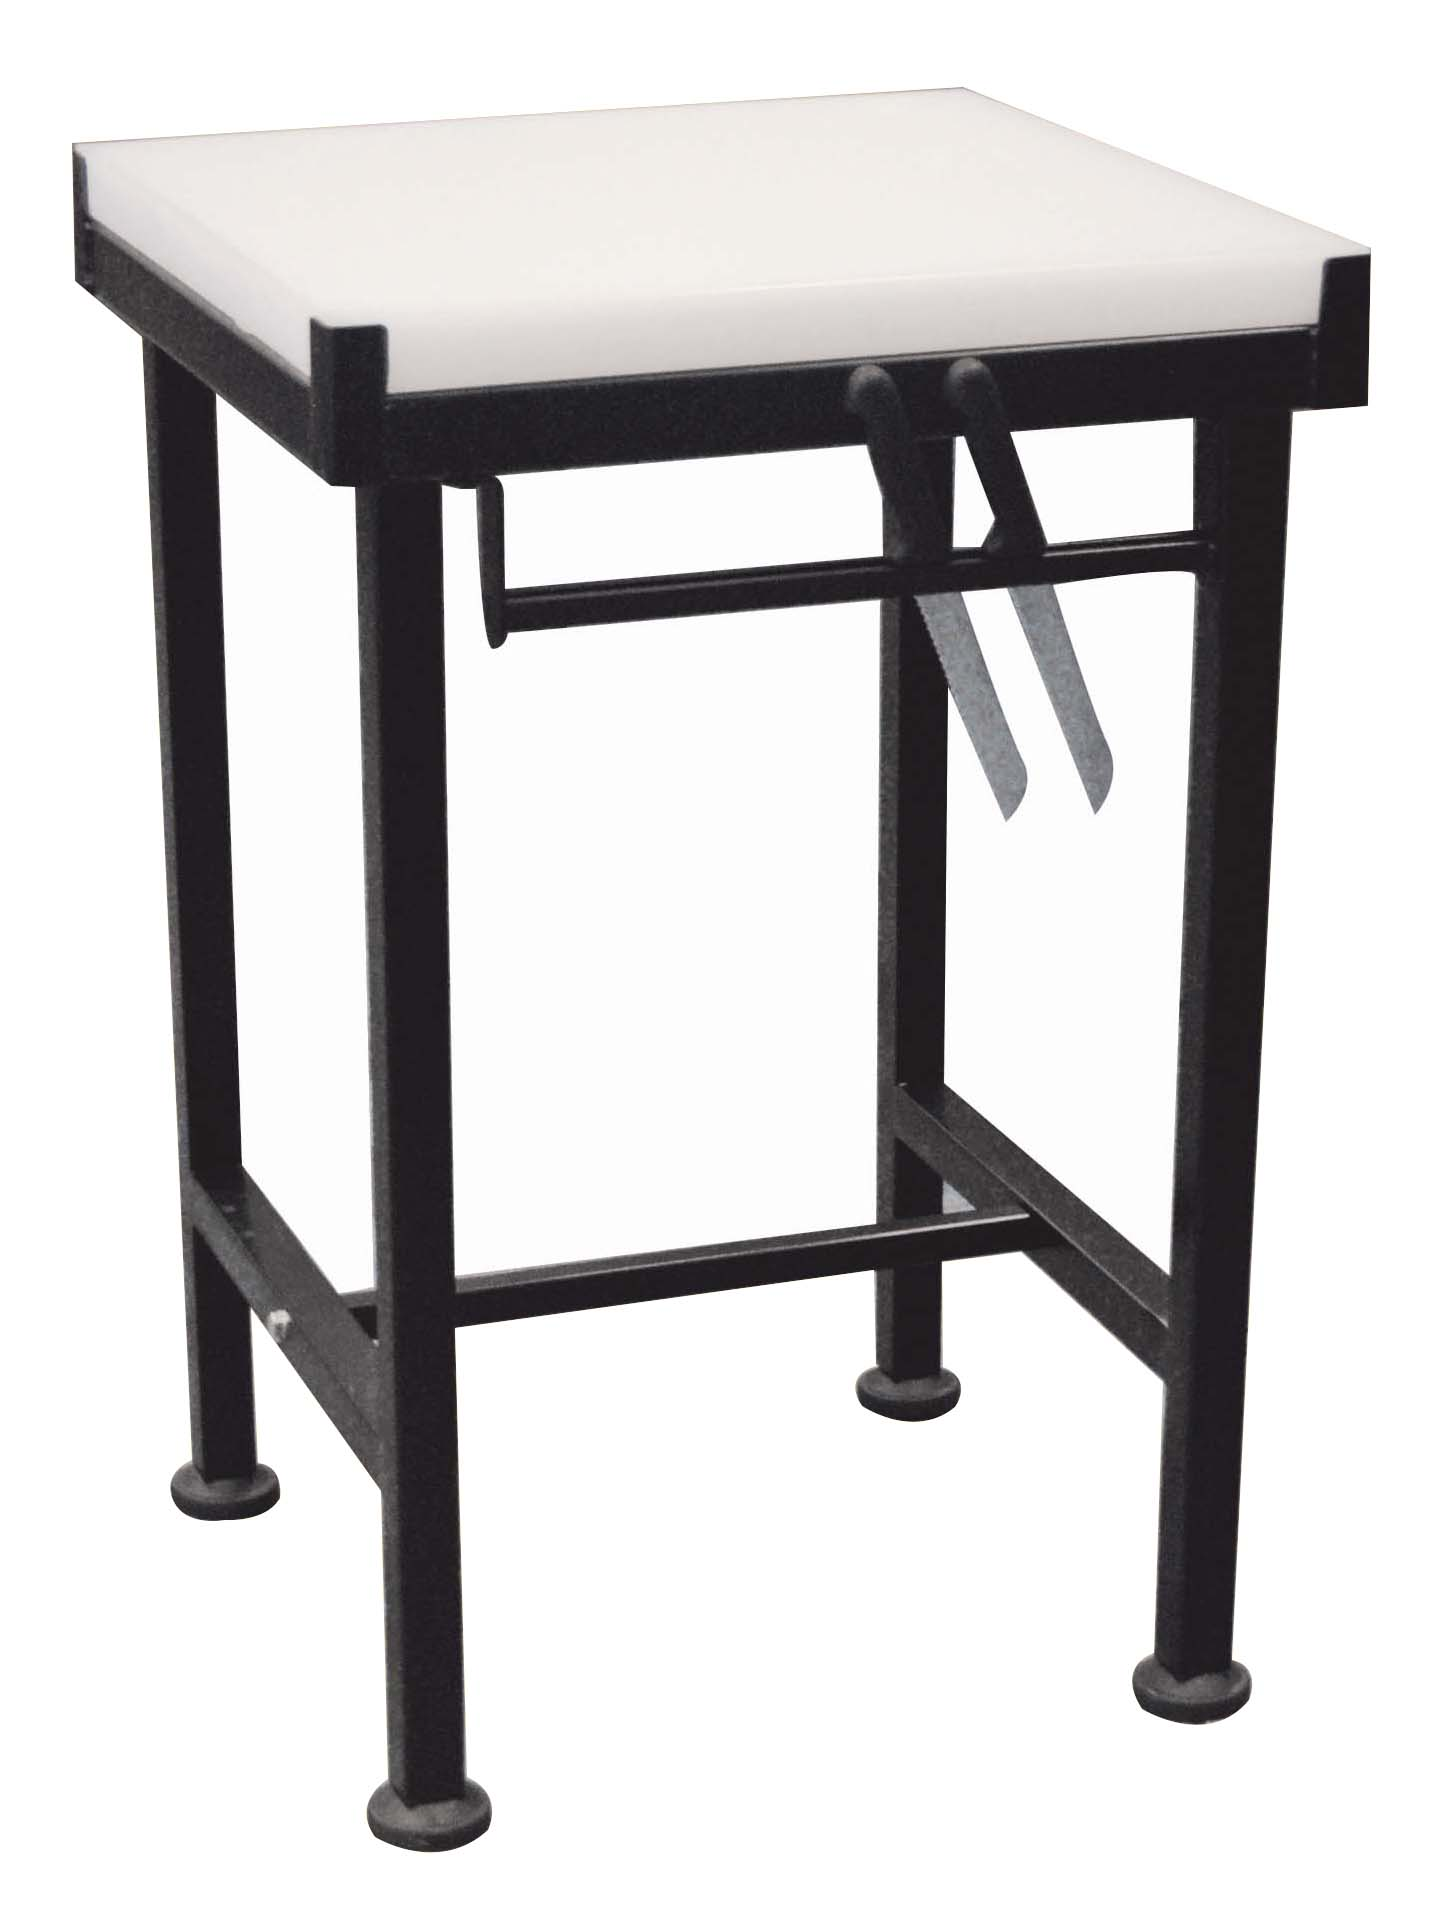 BUTCHER BLOCK STAND FOR PVC